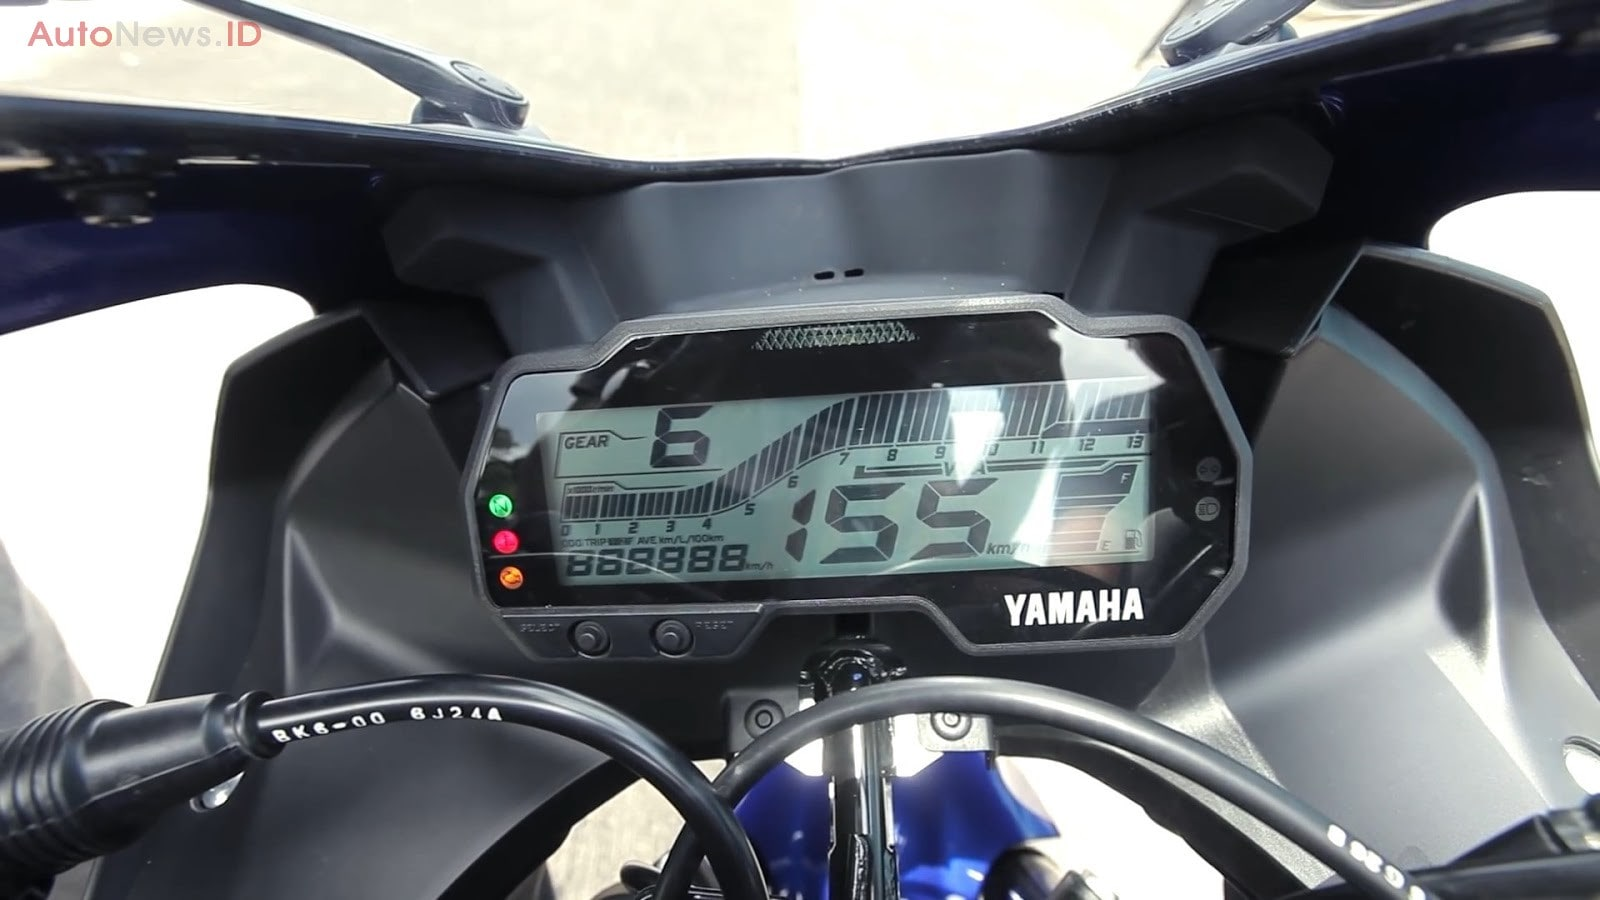 All New Yamaha R15 2017 Speedometer Full Digital